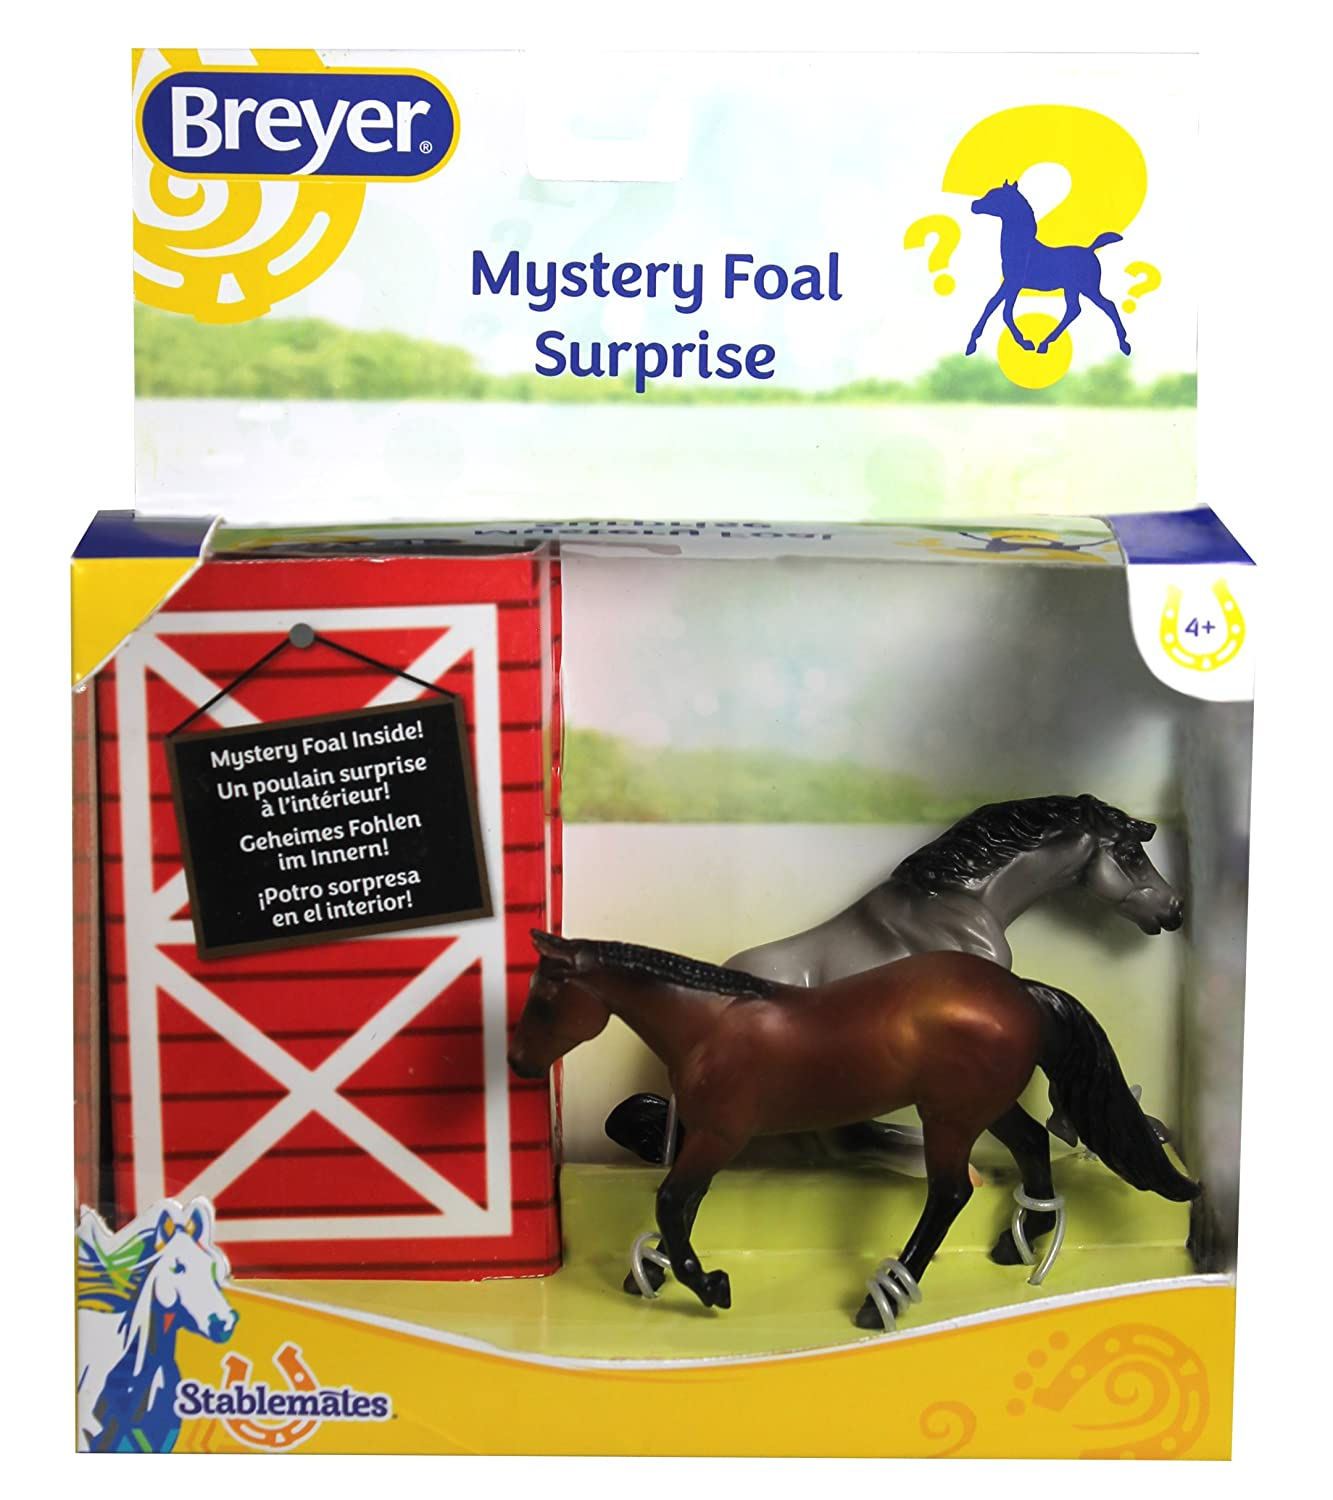 Breyer Mystery Foal Surprise Horse Box Toy Reeves International 5938